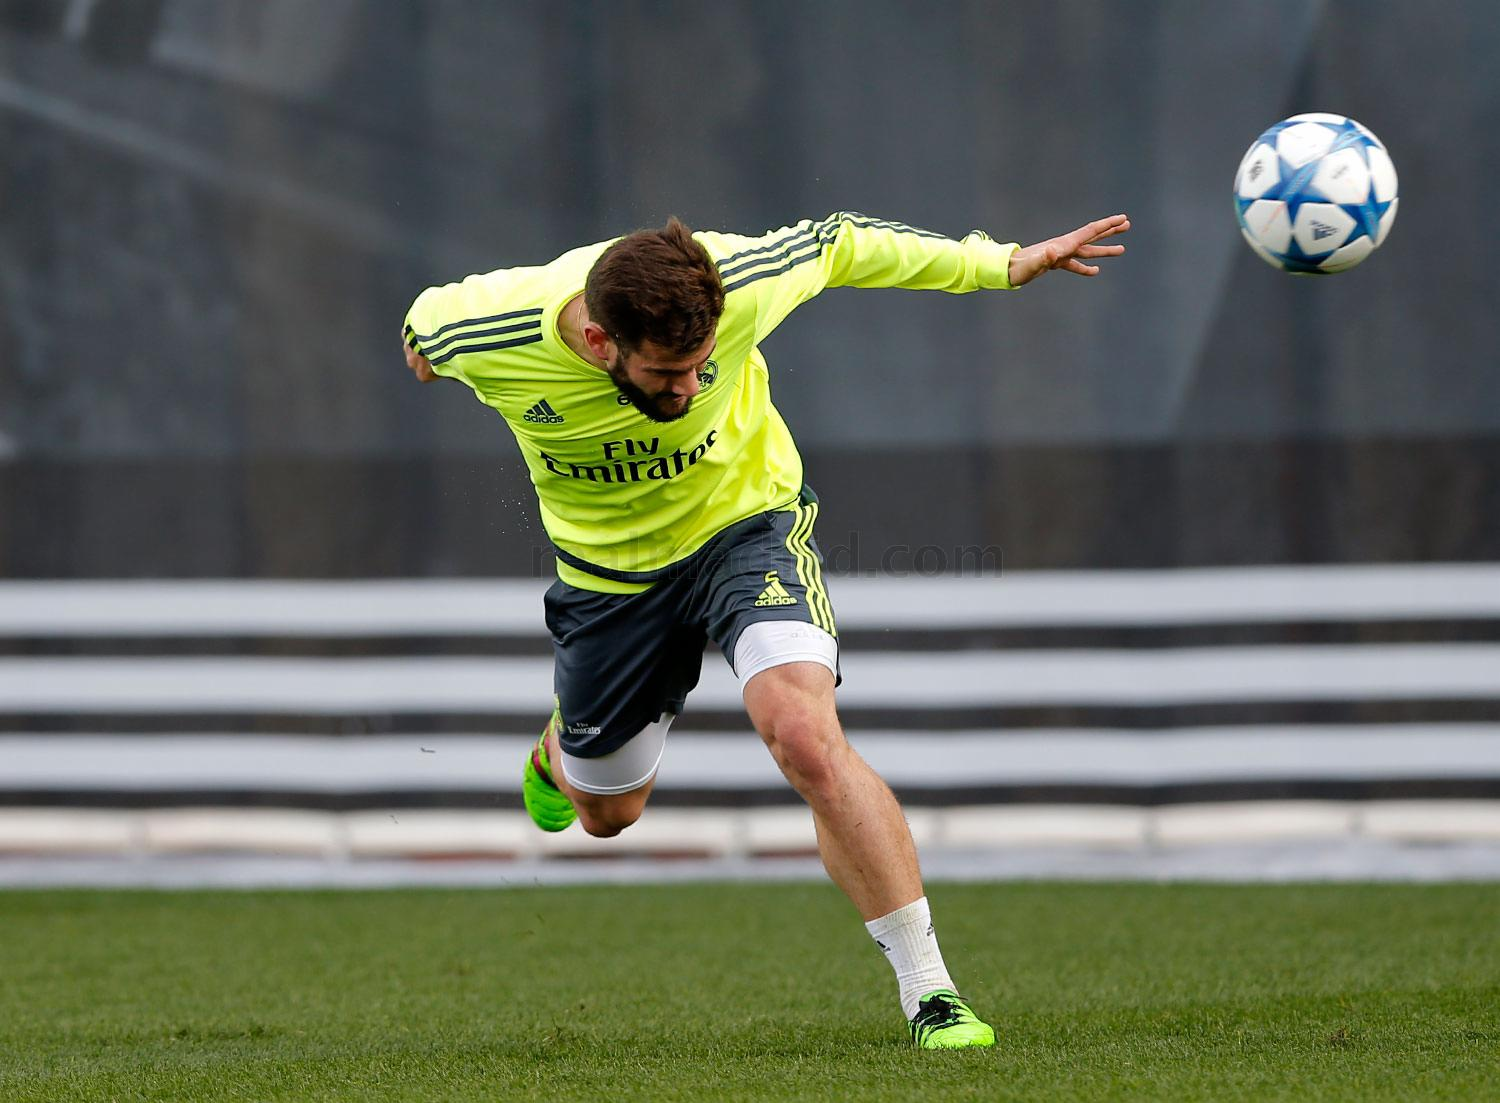 Real Madrid - Entrenamiento del Real Madrid - 14-02-2016